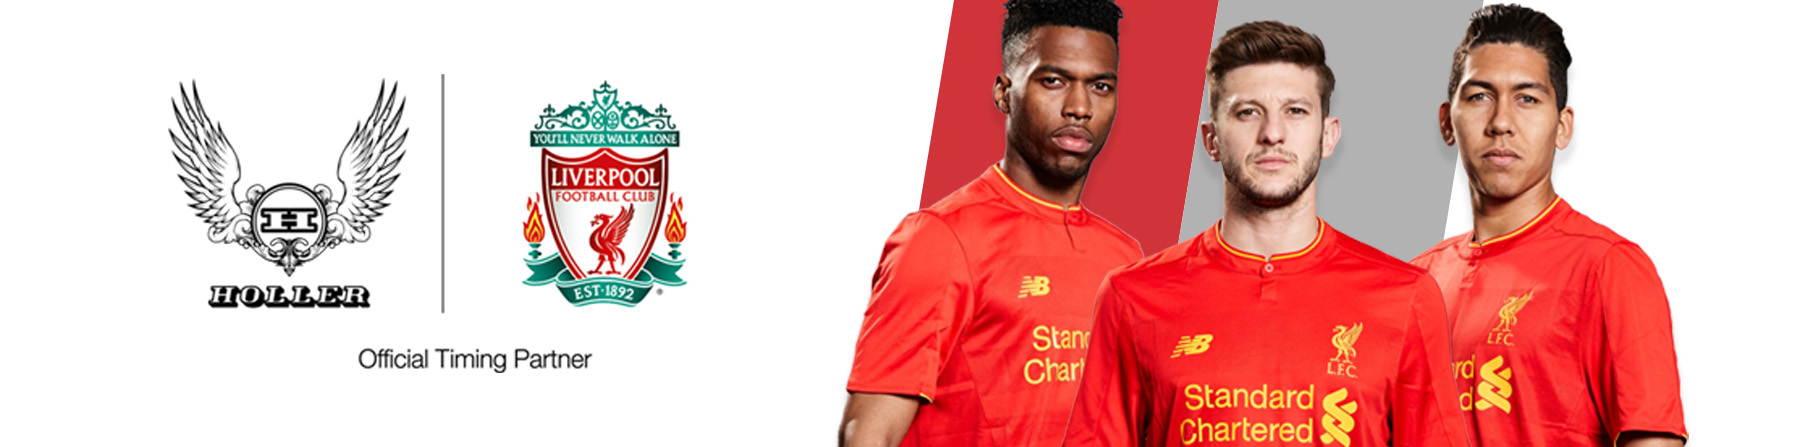 Holler - The Official Timing Partner of Liverpool FC